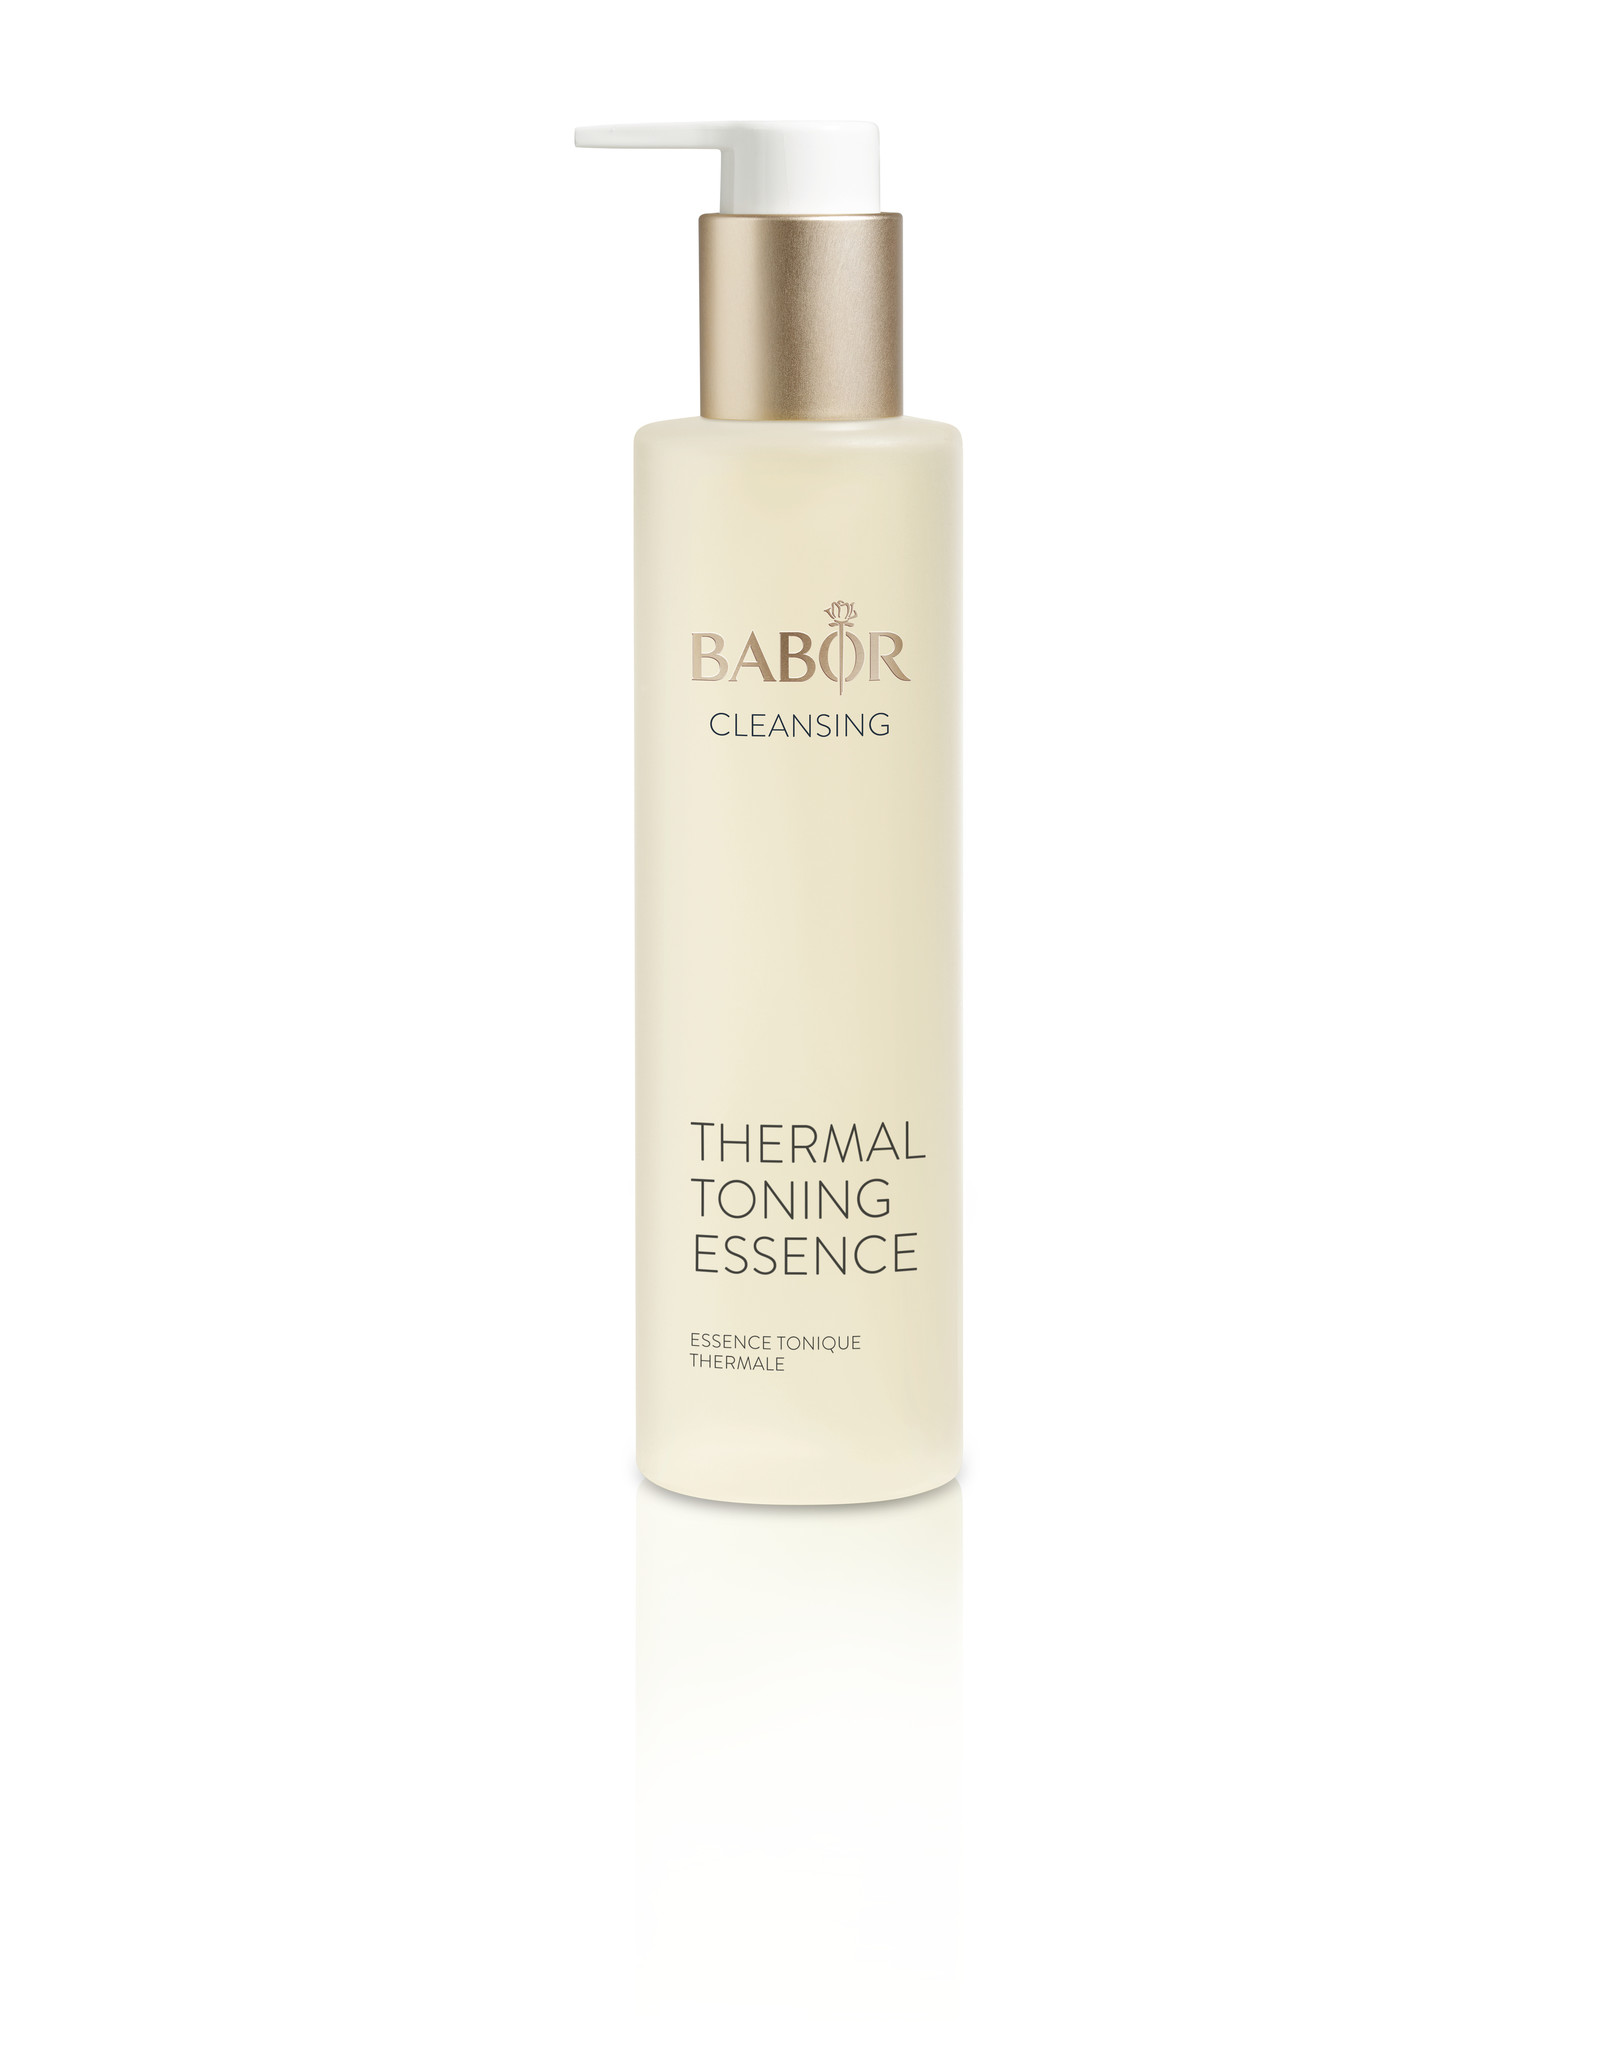 BABOR CLEANSING THERMAL TONING ESSENCE 200 ML